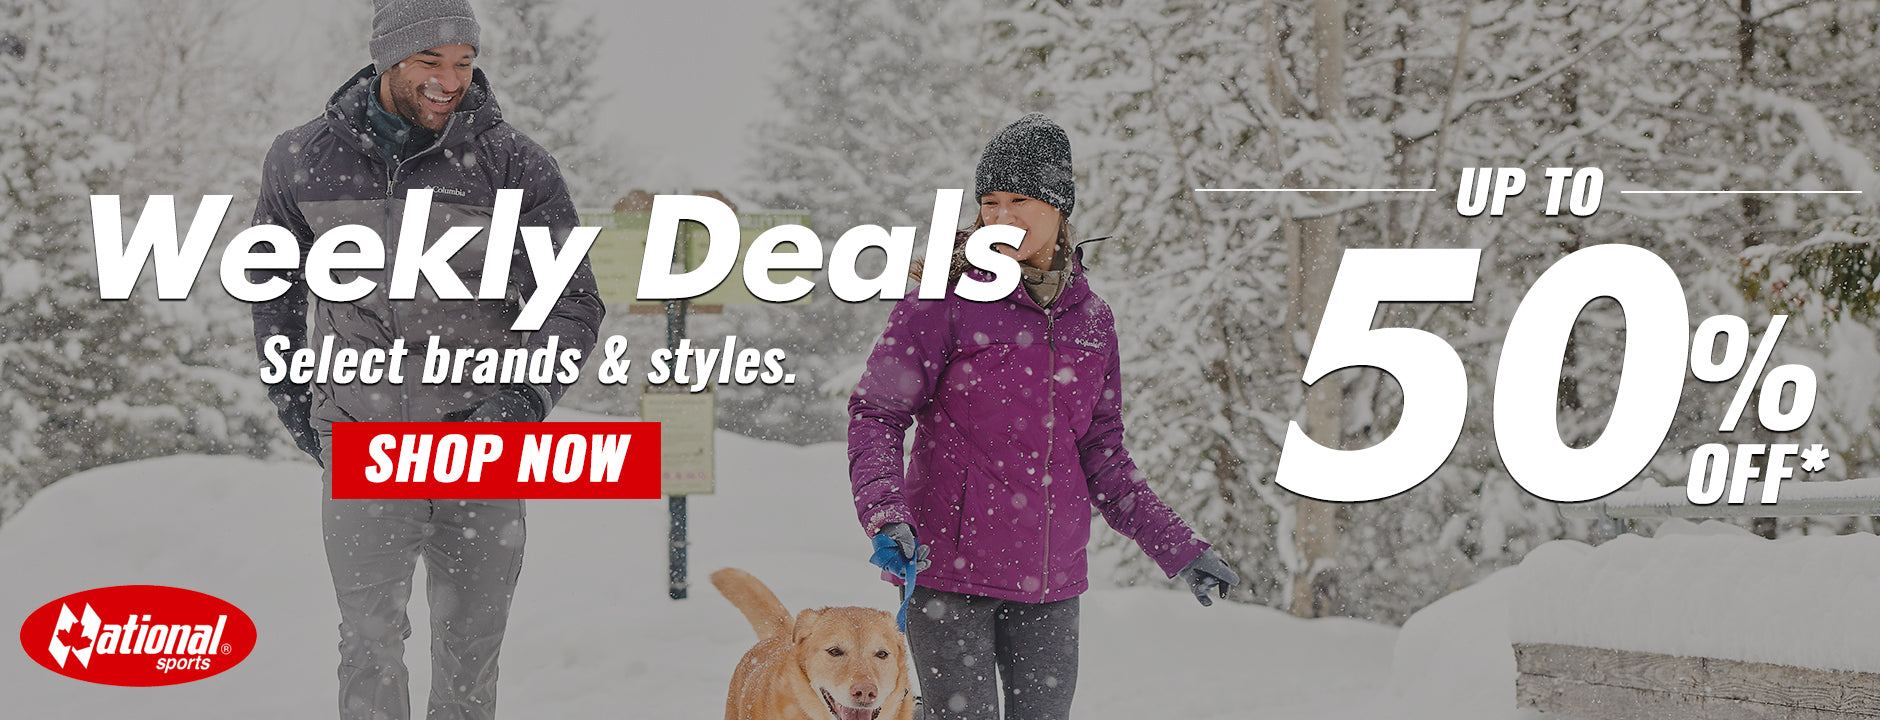 Weekly Deals Page